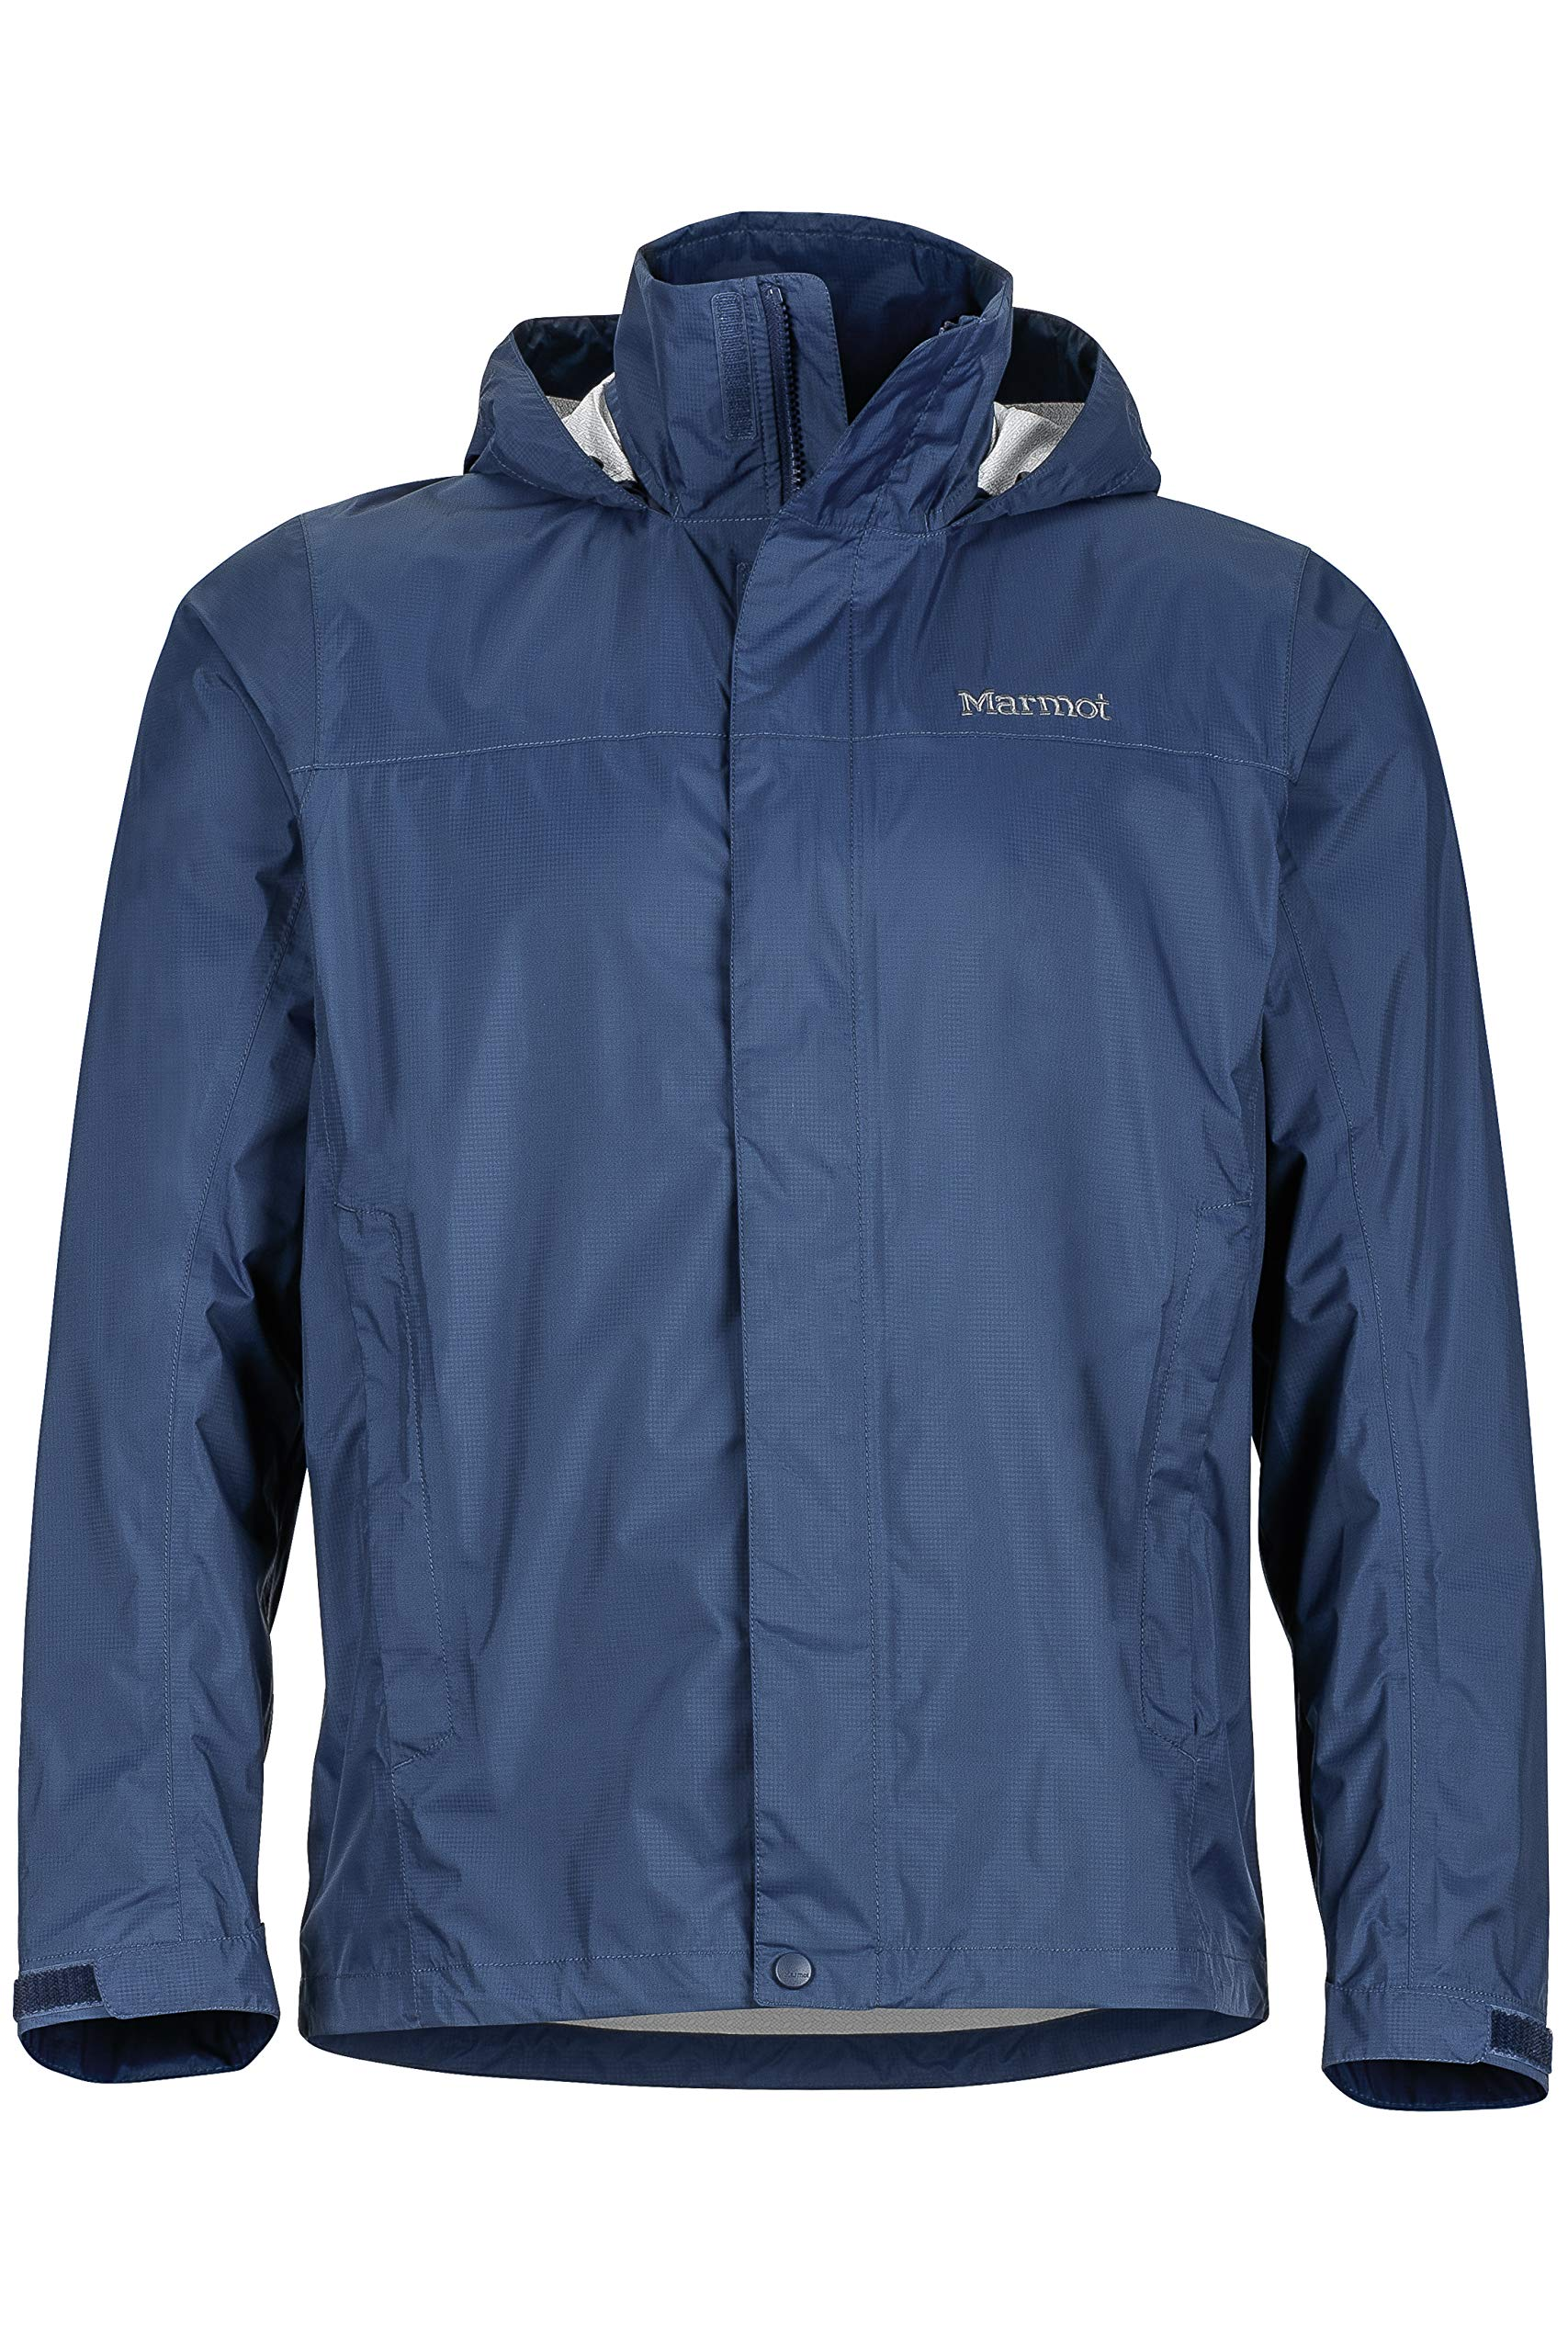 Marmot Men's PreCip Lightweight Waterproof Rain Jacket, Arctic Navy, 3X-Large by Marmot